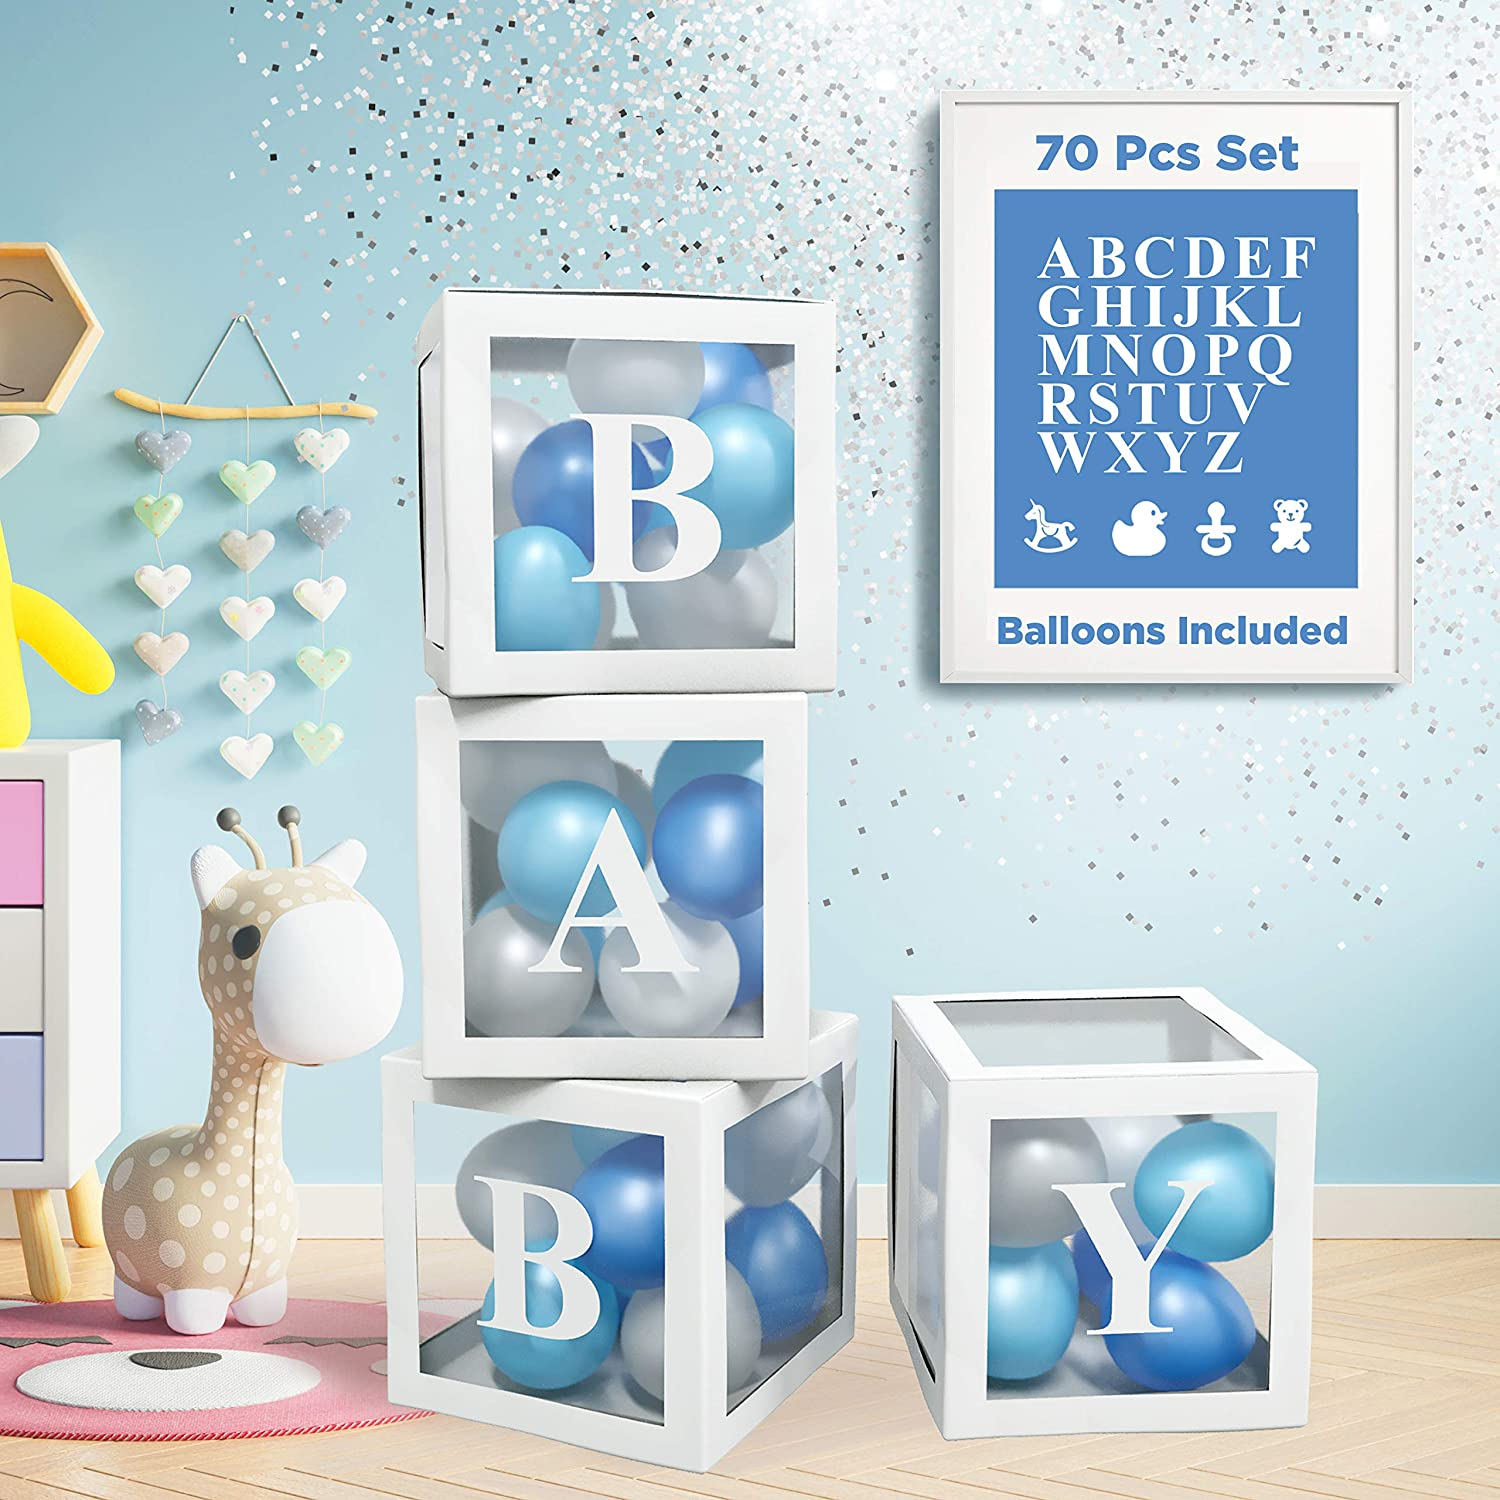 Baby Shower Decorations For Boy - 70 PCS KIT Baby Boxes With Letters For Baby Shower | 4 PCS ABC Baby Letter Blocks, 32 Balloons, 4 Gender Reveal Party Icons and 26 Alphabet Letters for Baby Boy Shower Decorations